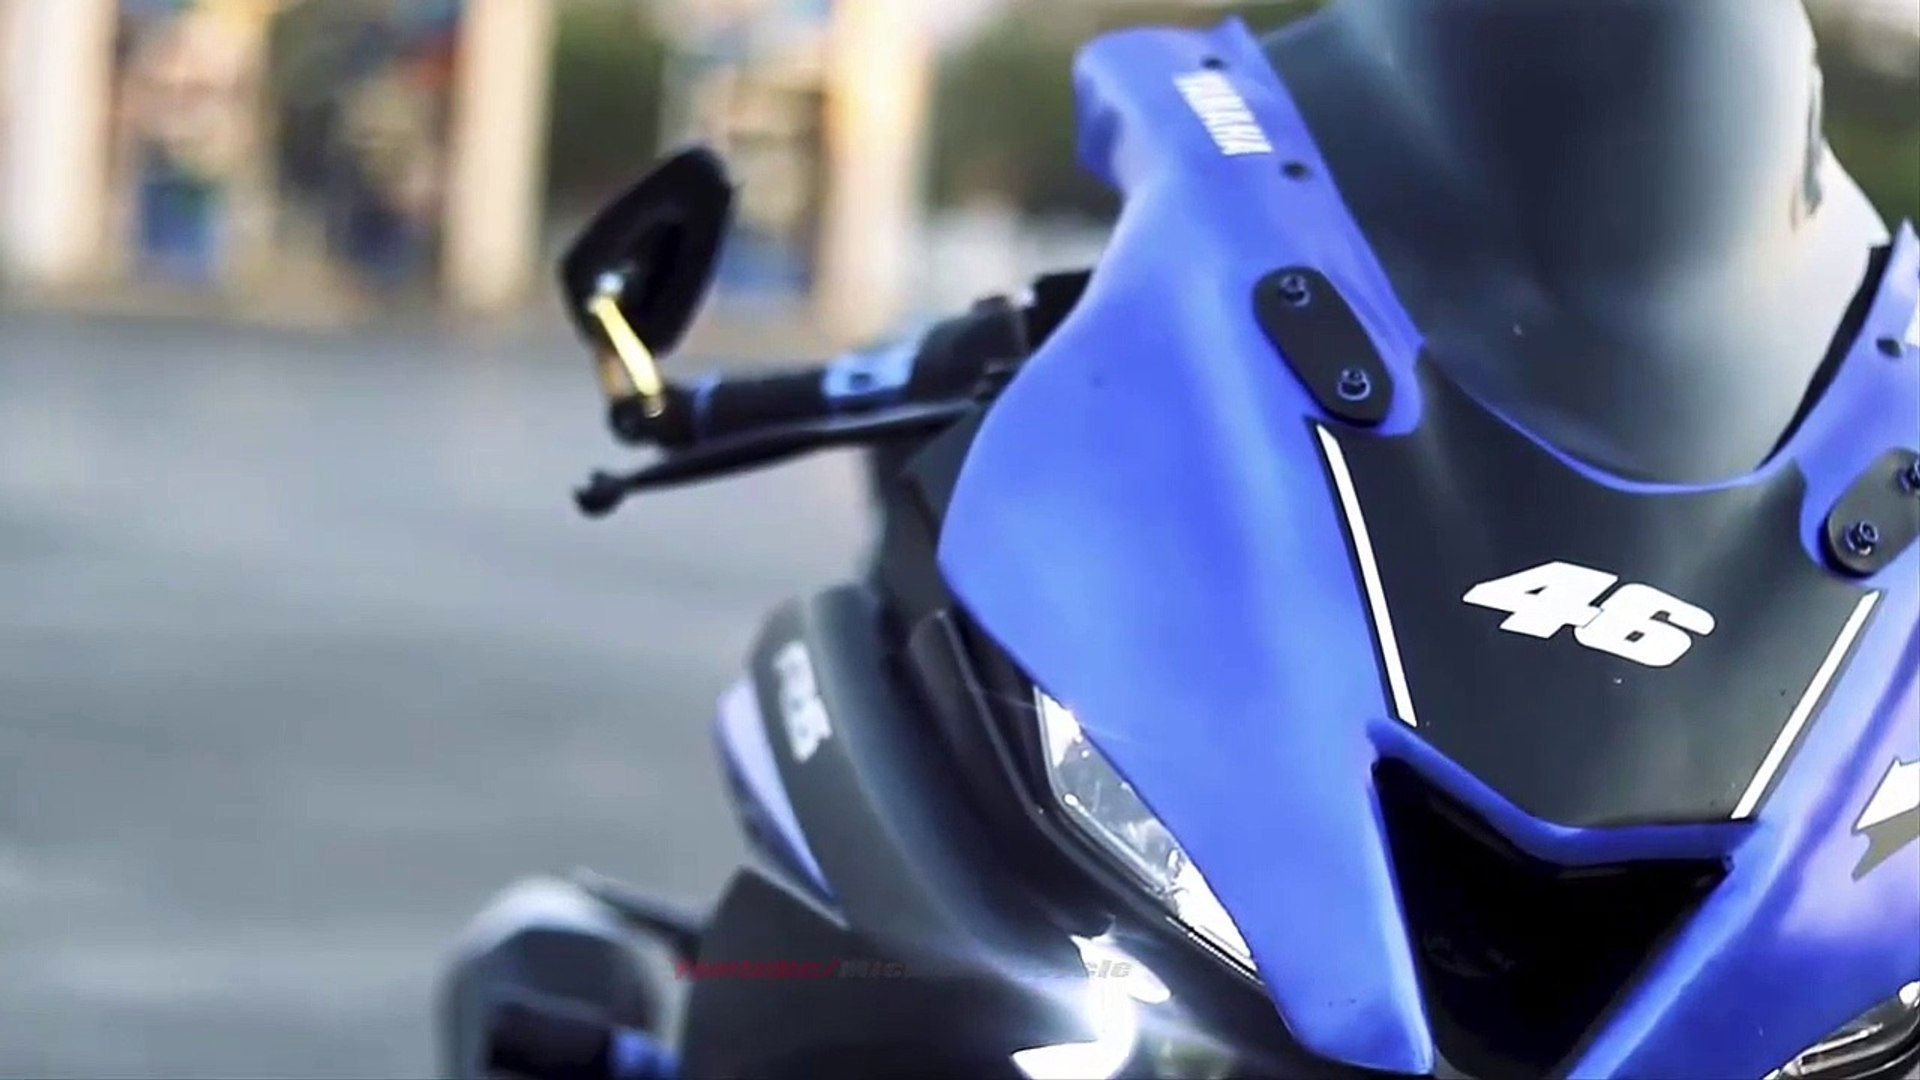 2019 Modify Yamaha R15 V3 Body Custom DNA From Superbike YZF-R6 | Mich  Motorcycle